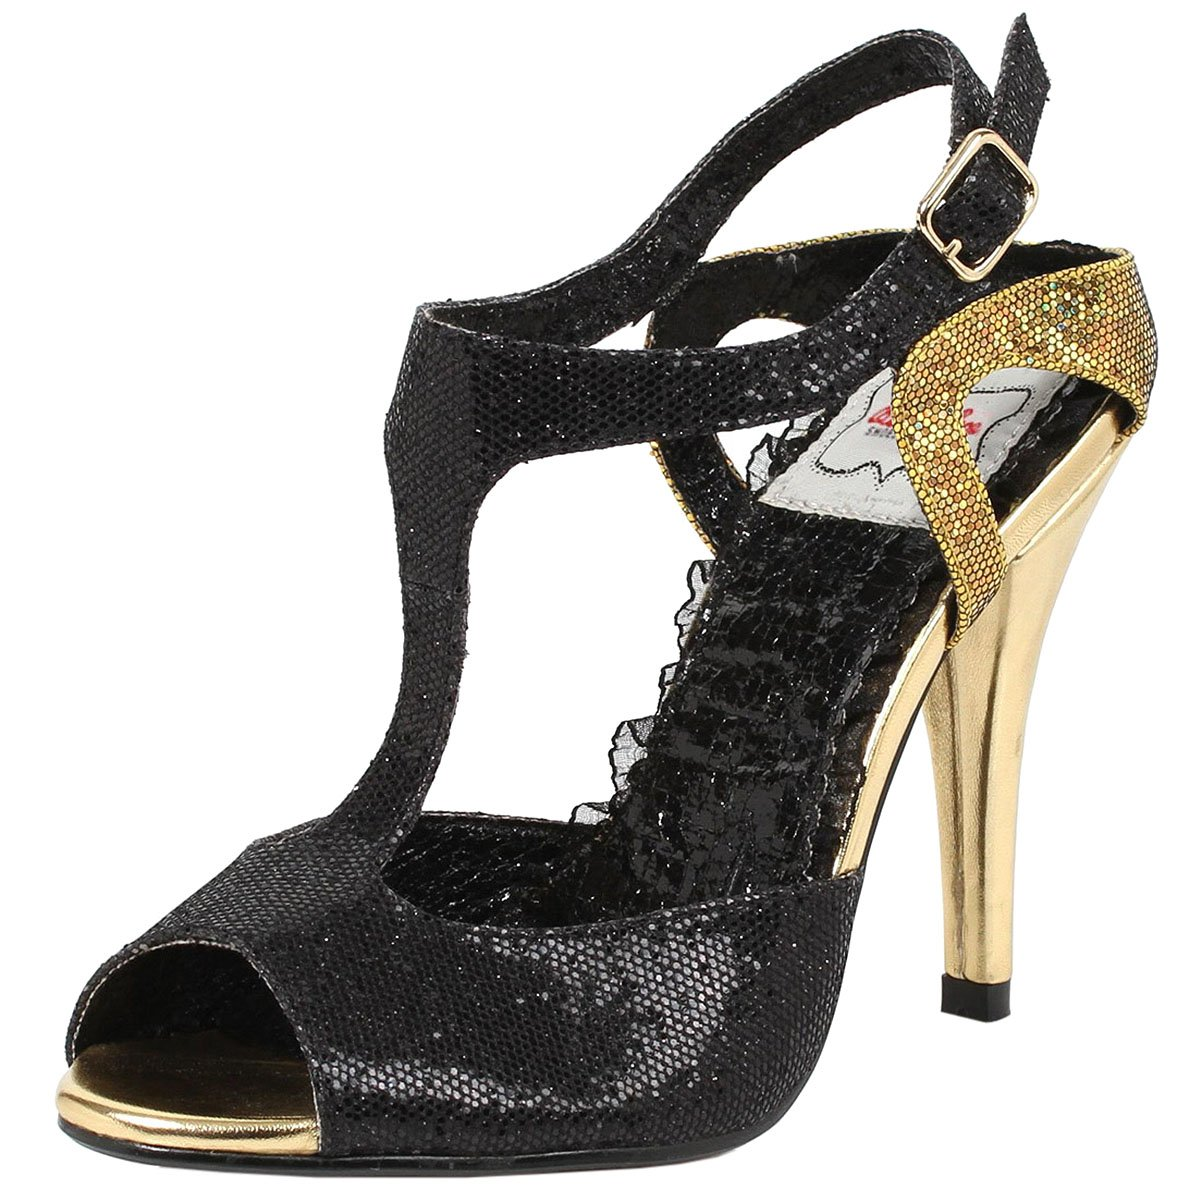 Unqiue and Fashionable Black and Gold Sequin T-Strap Sandals with 4 Inch Heels 0